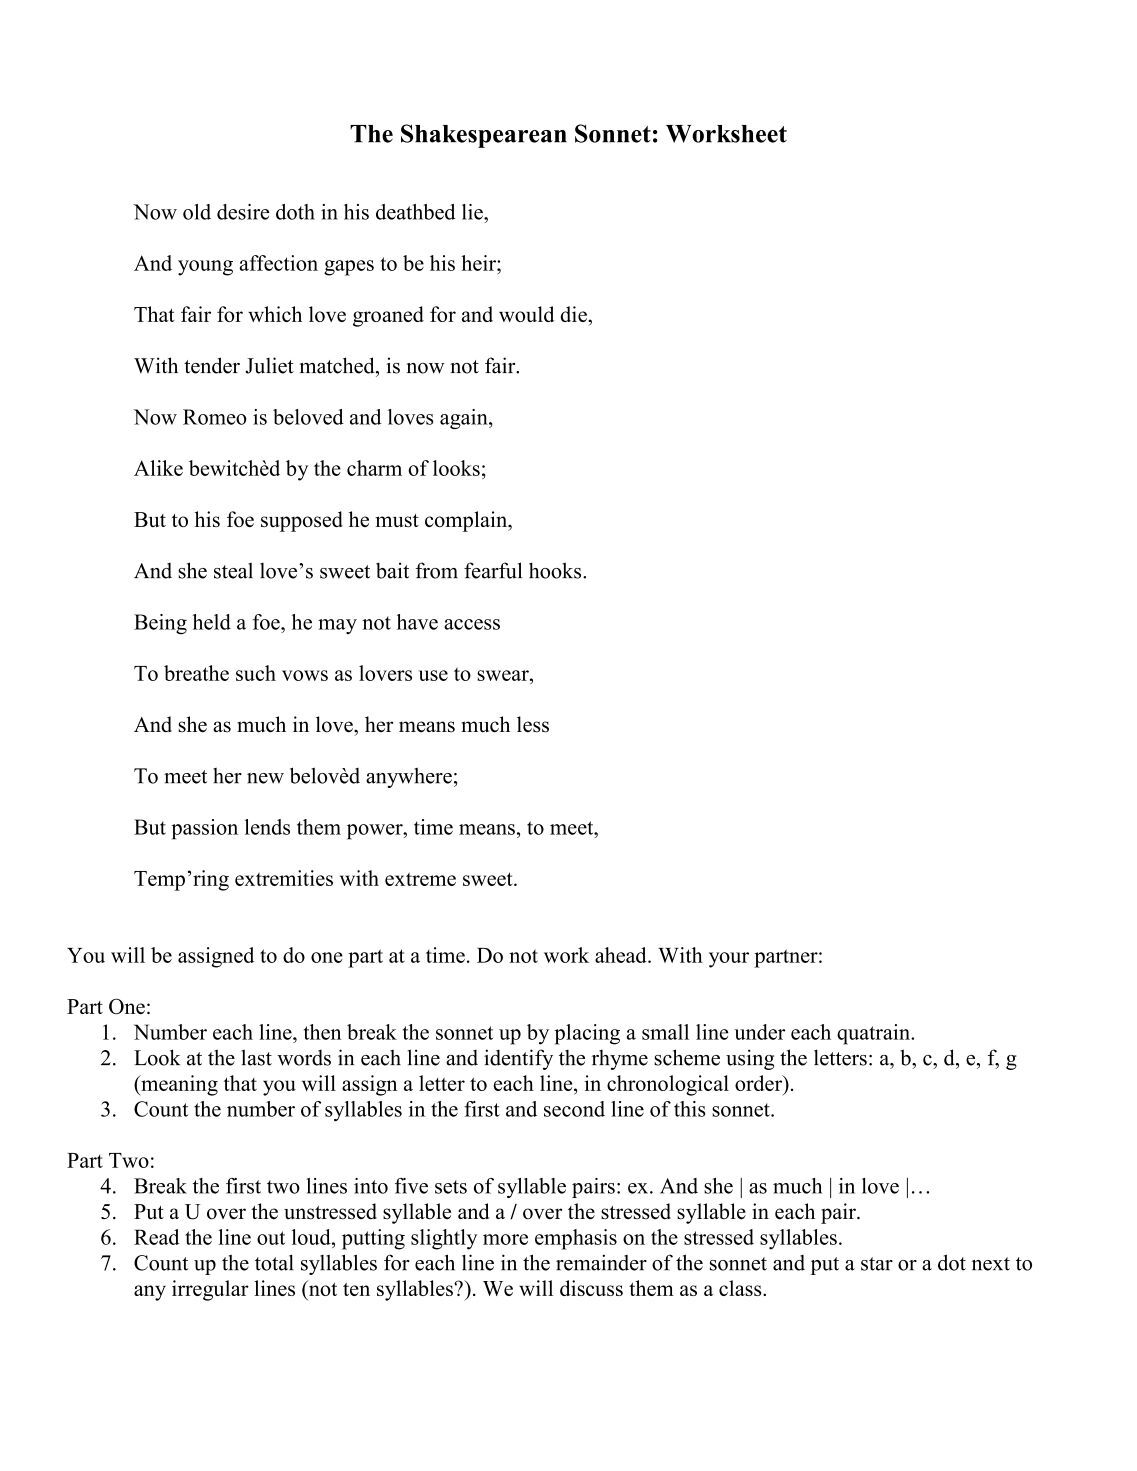 Worksheet Sonnet Worksheet 5 free magazines from windsorhs com com